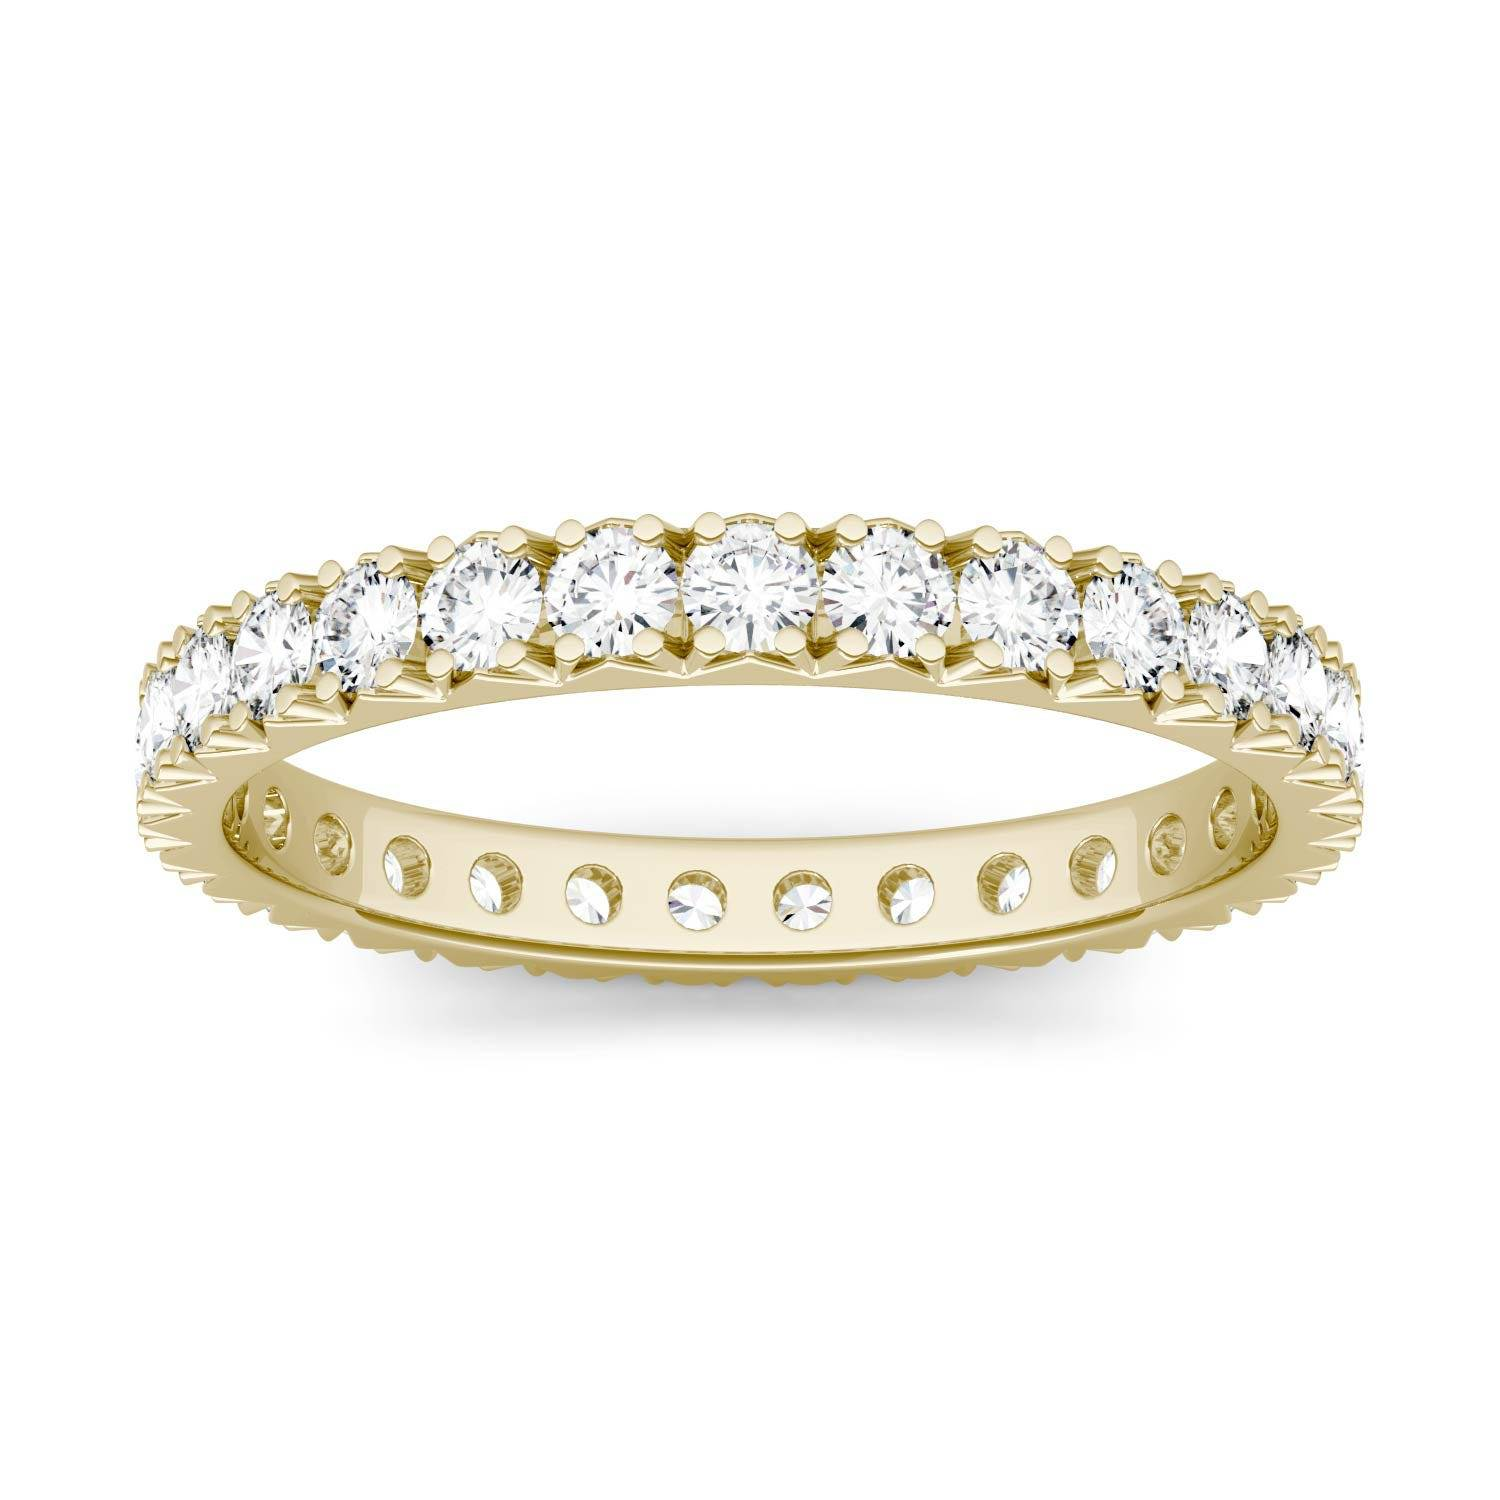 Charles & Colvard Eternity Prong Set Band Wedding Ring in 14K Yellow Gold, Size: 7, 1.00CTW Round Forever One Moissanite Accent Stones Charles & Colvard  - Yellow Gold - Size: 7